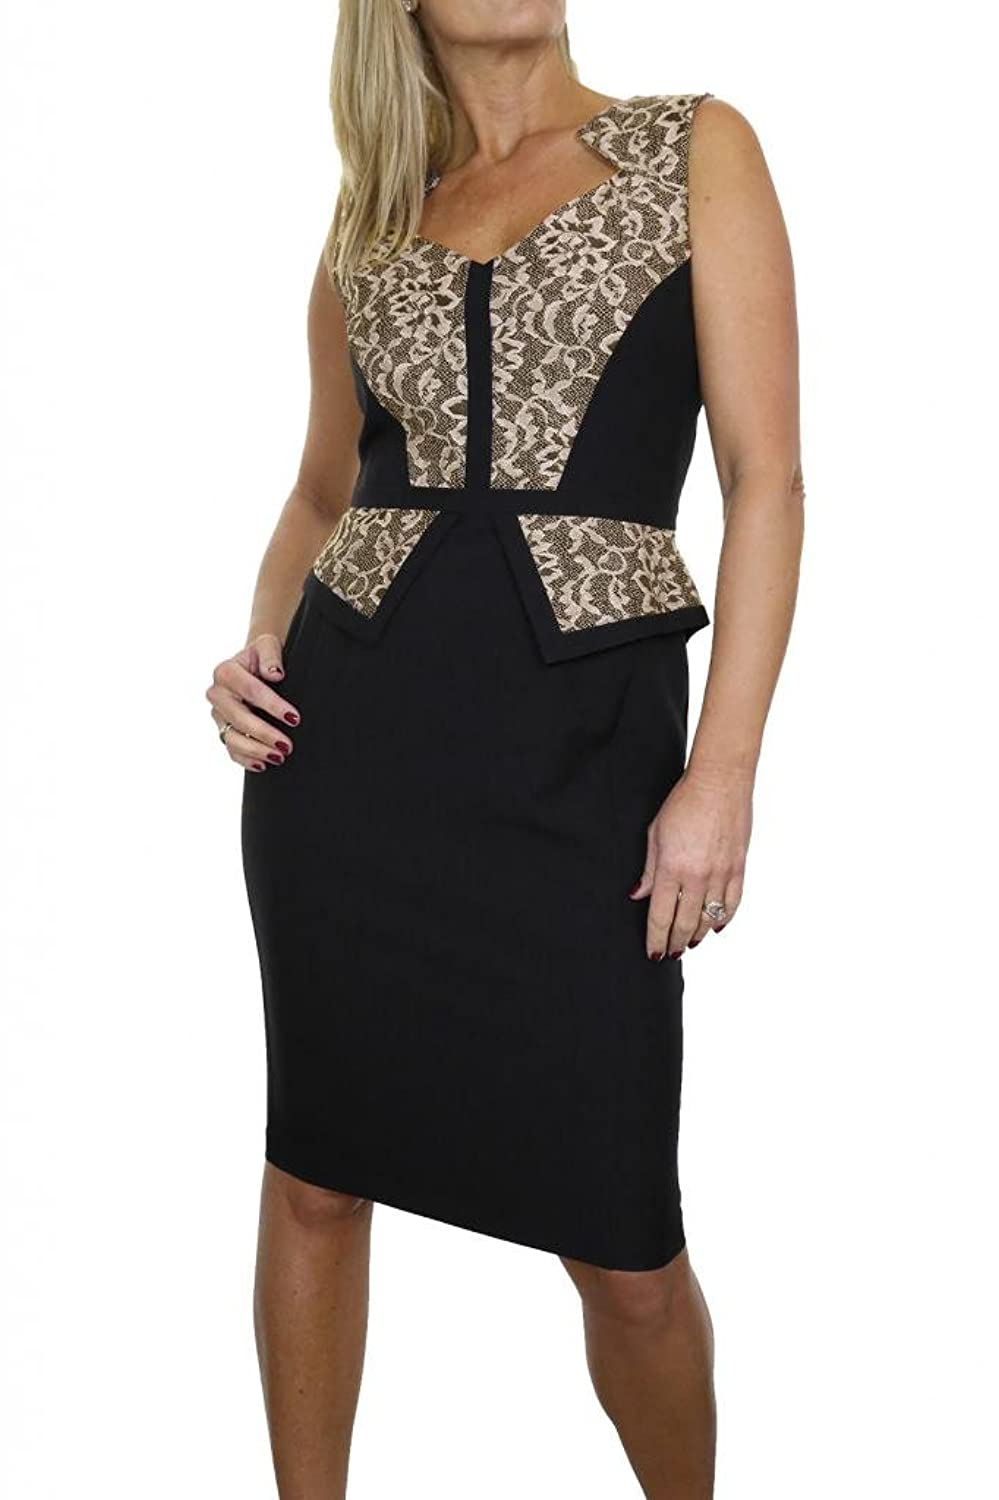 ICE (3994-1) Smart Washable Fully Lined Peplum Dress With Lace Black & Nude